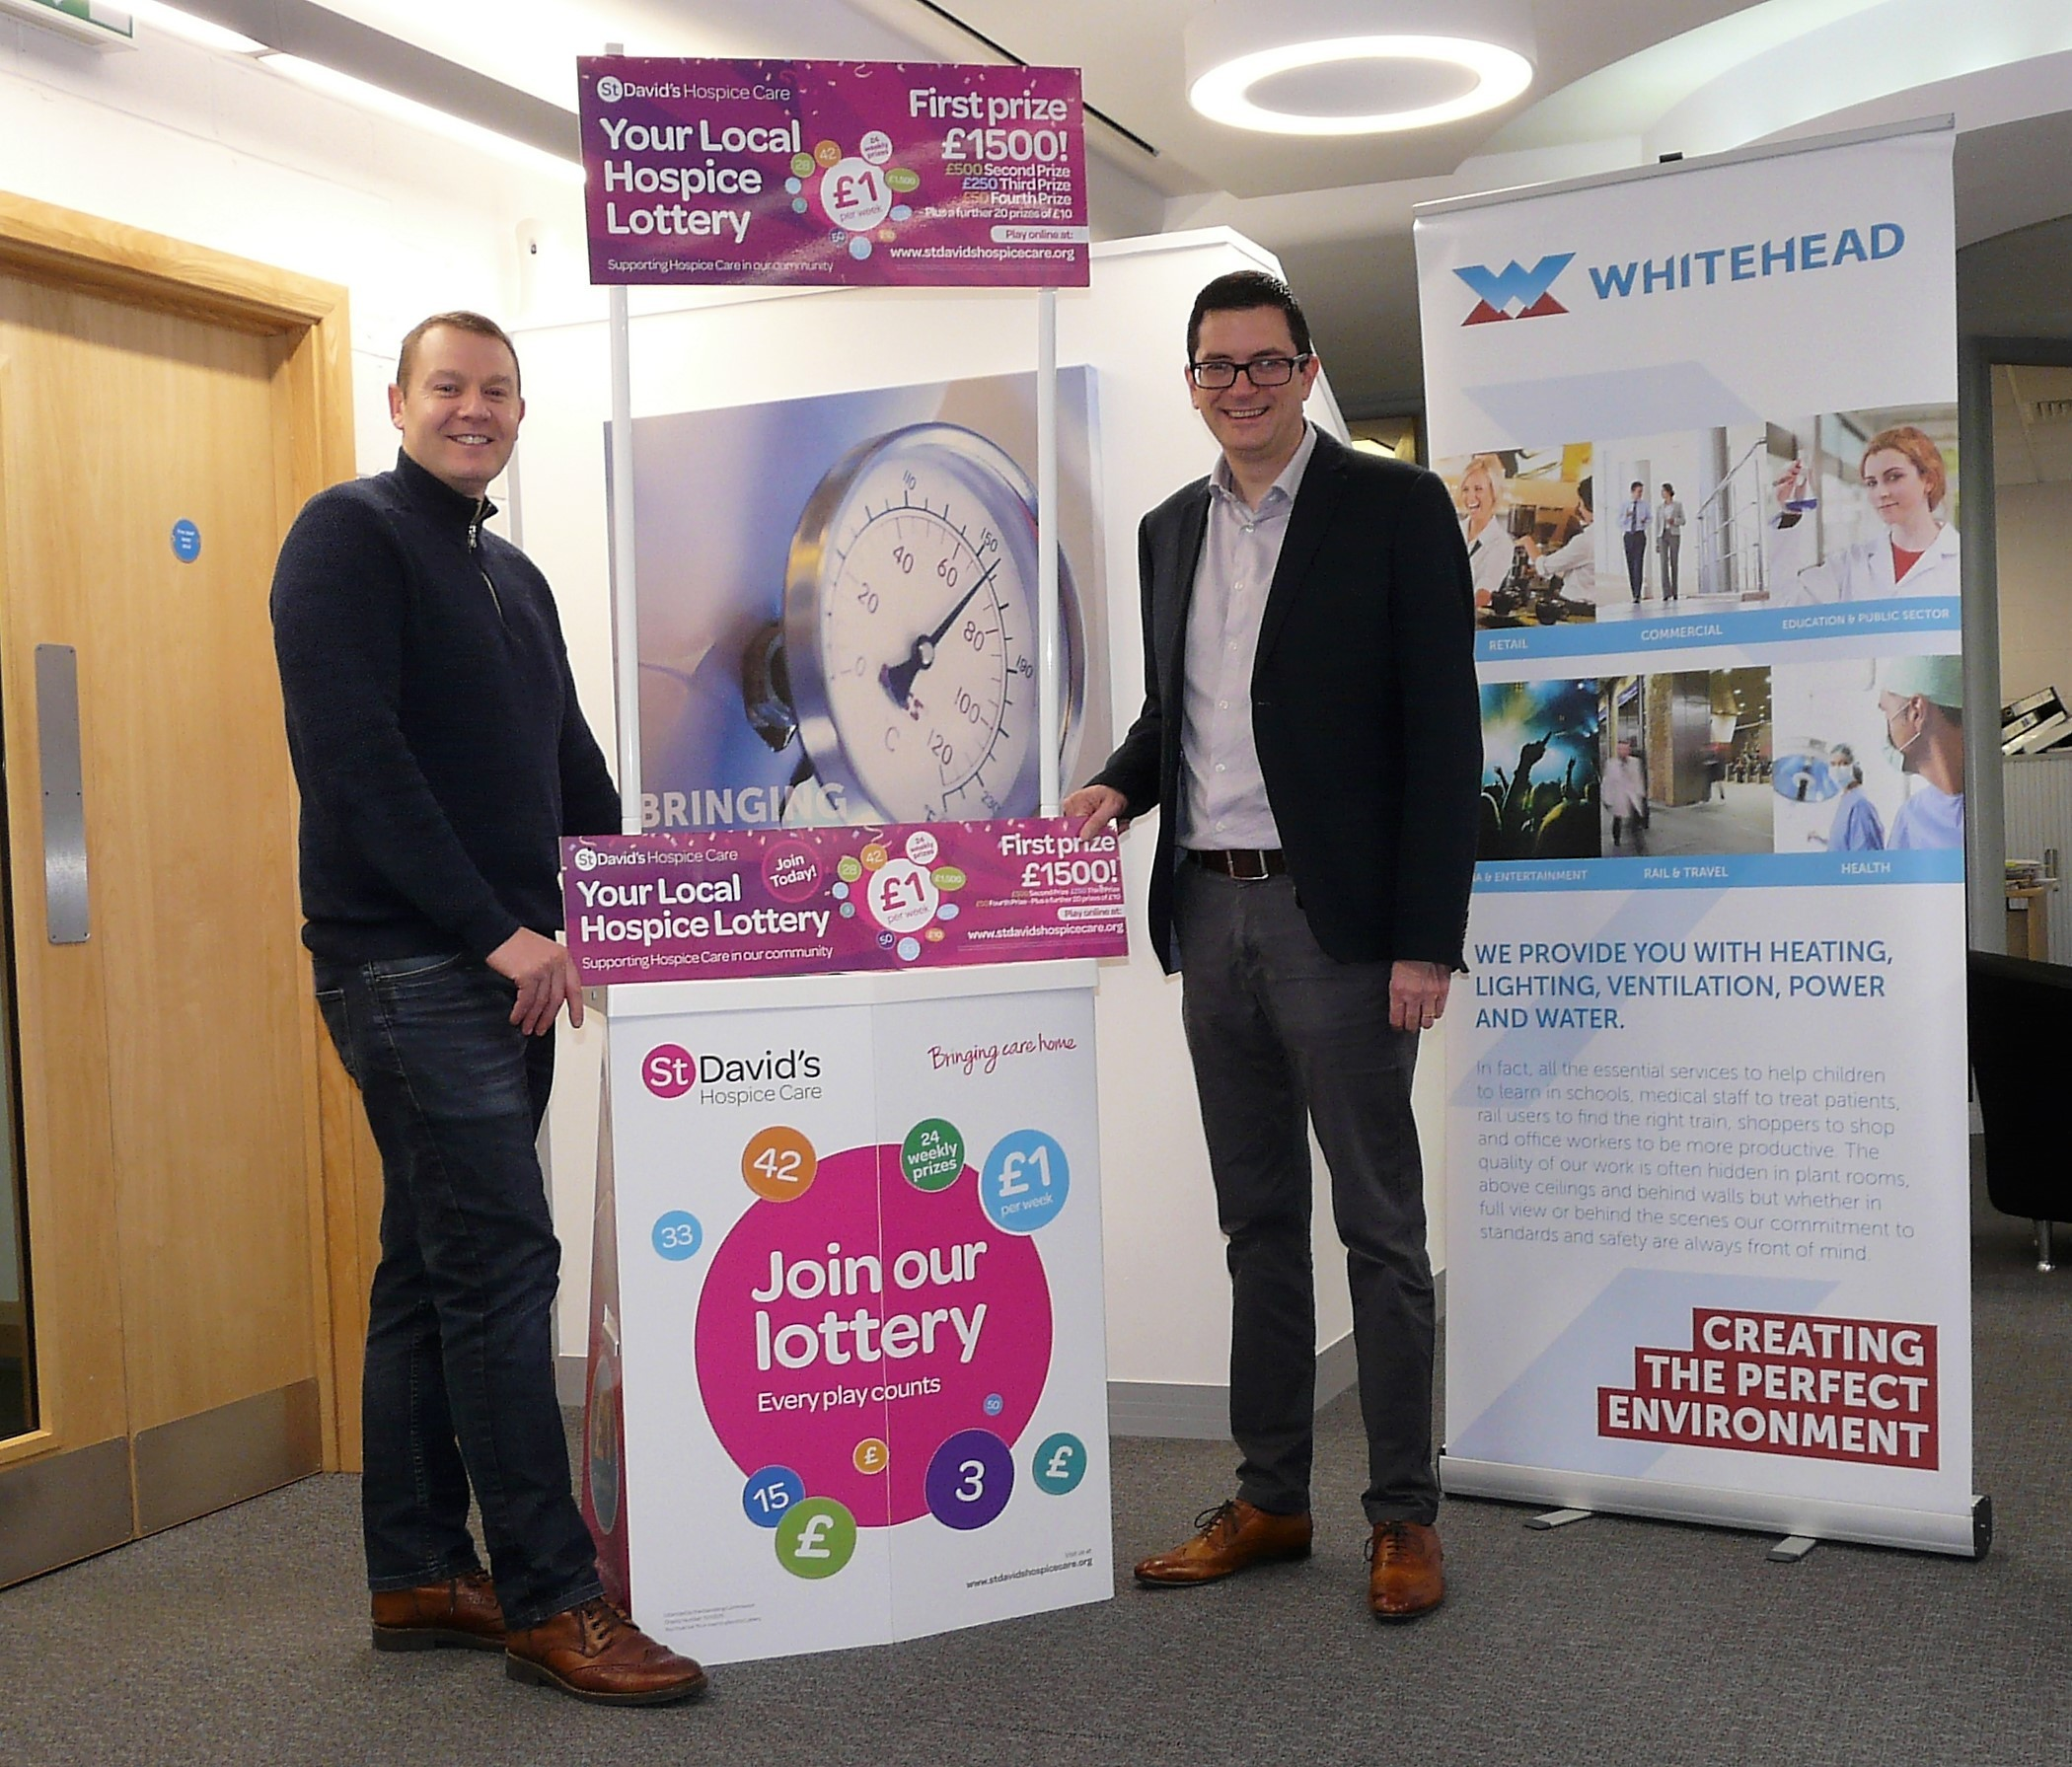 Signed up: Michael Tasker, of Whitehead (right) with Kris Broome of St David's Hospice Care launch the new lottery promotion. Picture: DBPR